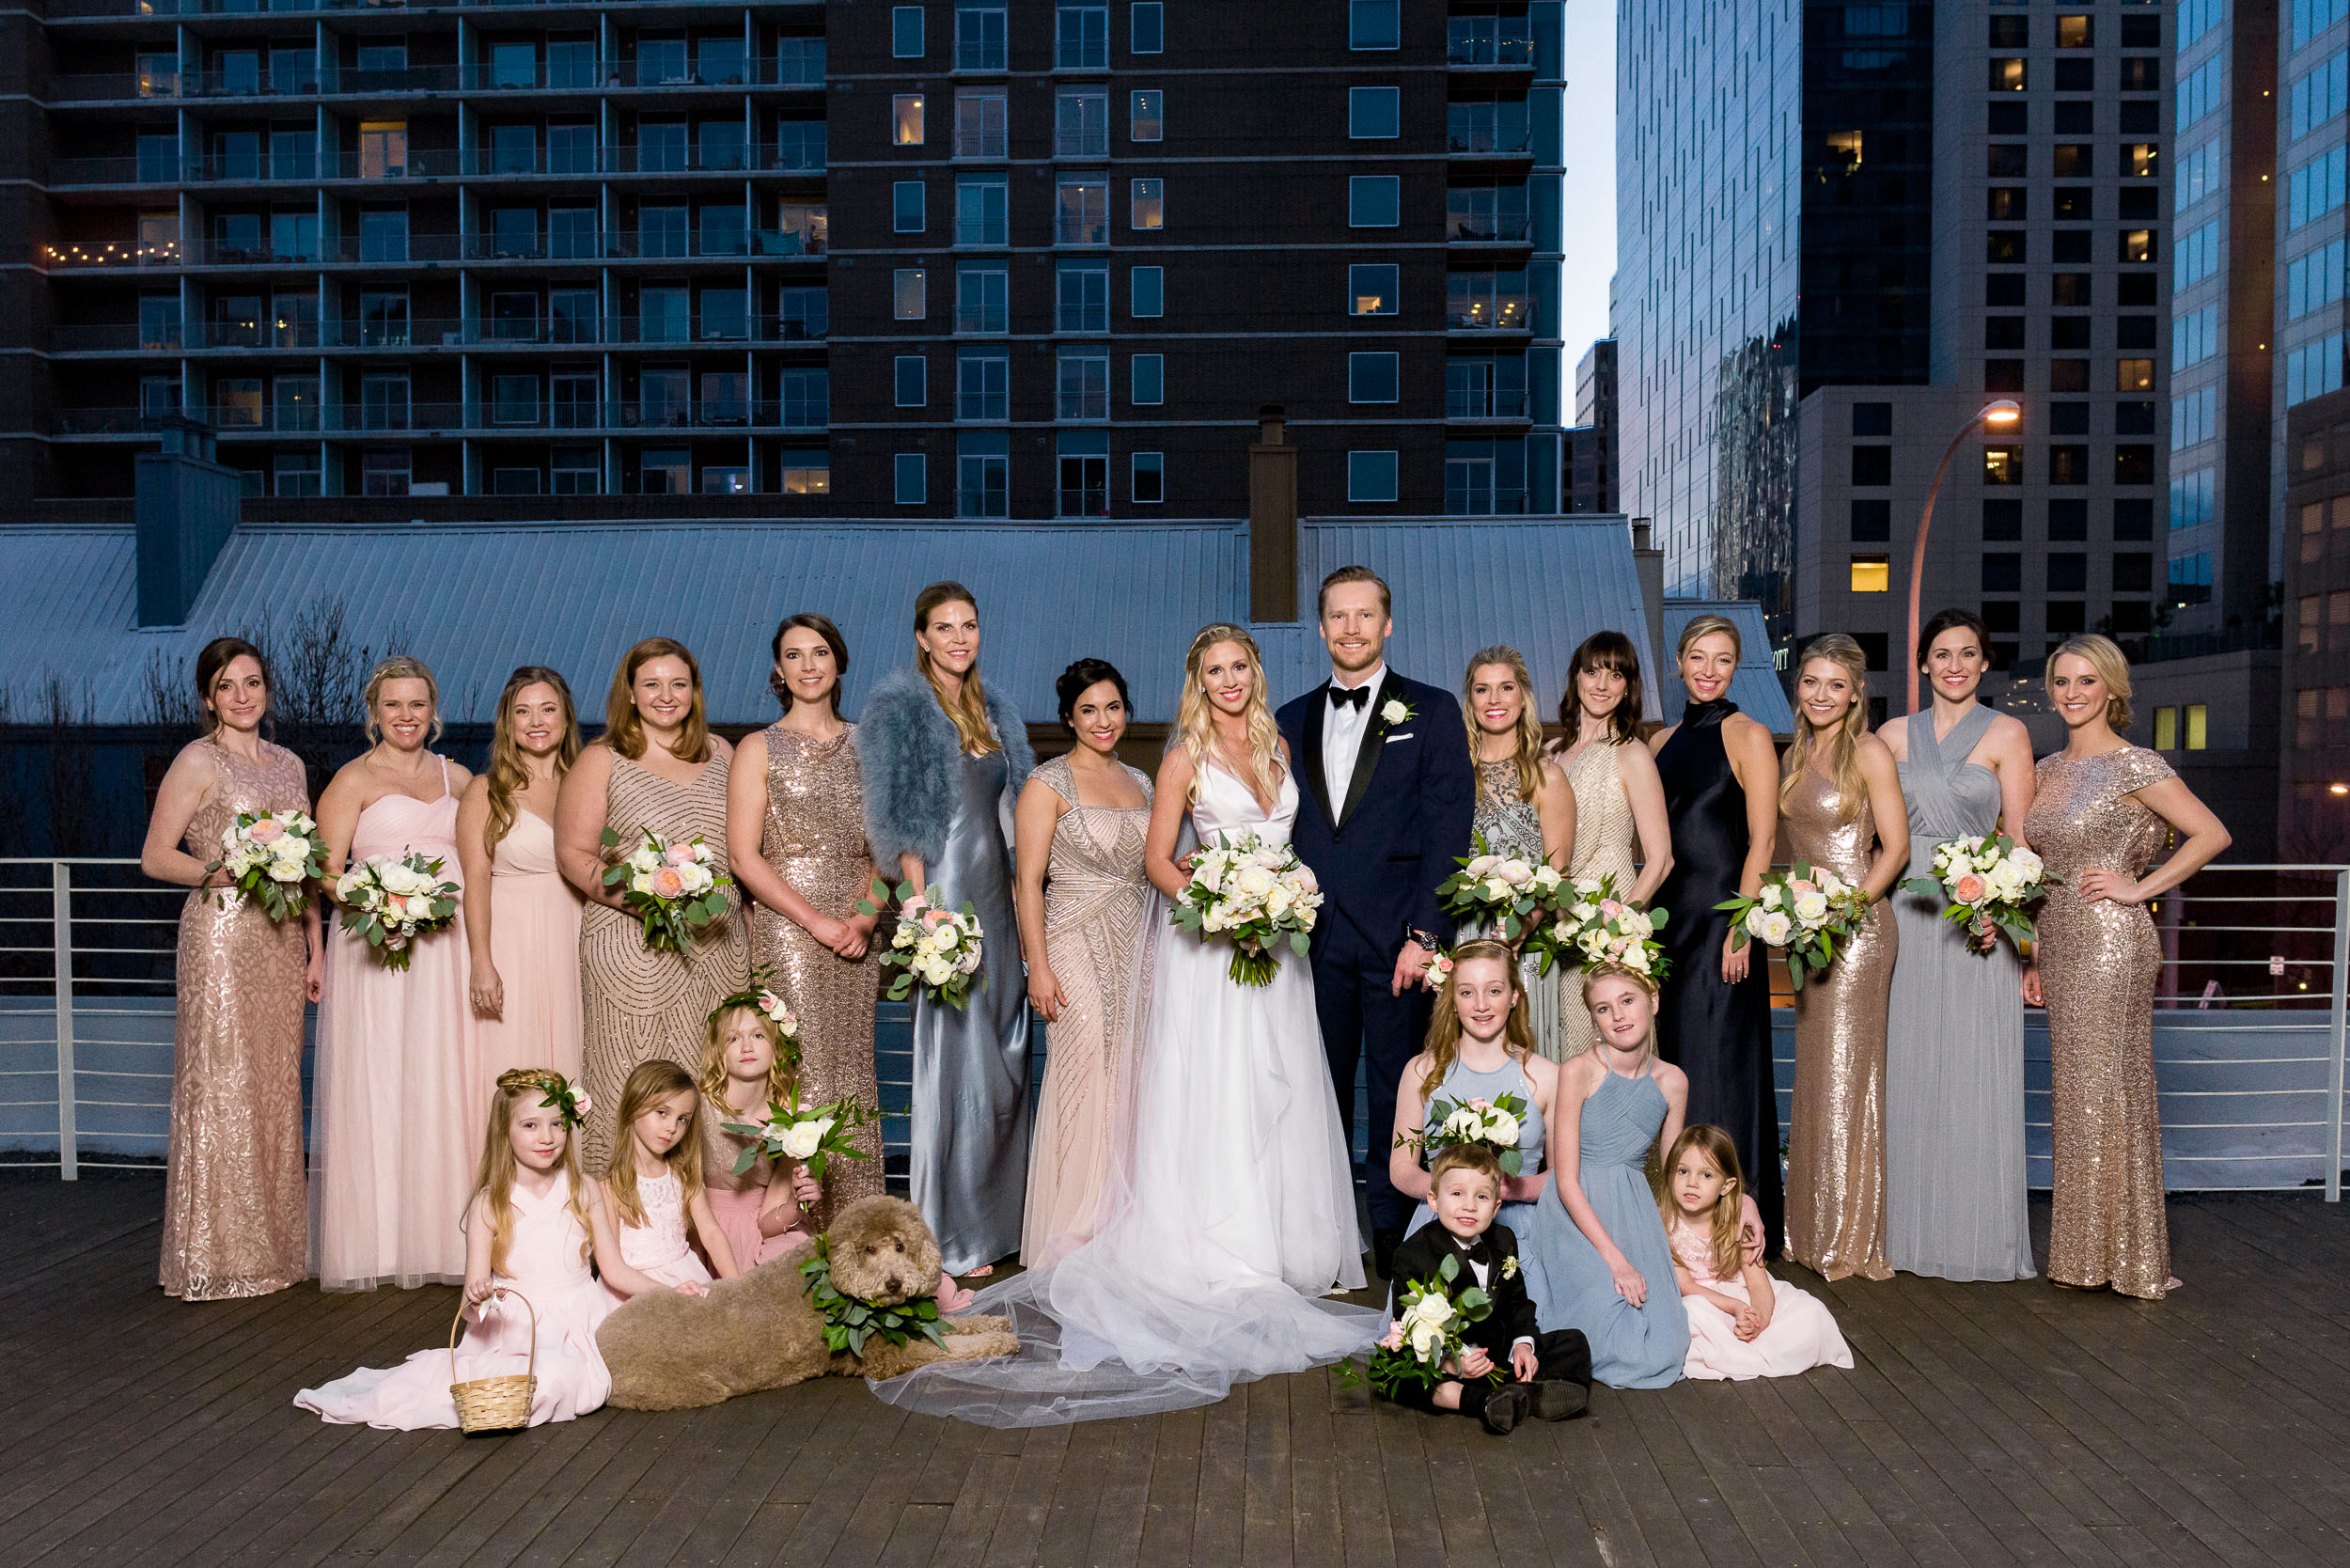 bridal-party-portrait-elegant-outdoor-rooftop-deckAustin-wedding-photographers-brazos-hall-downtown-